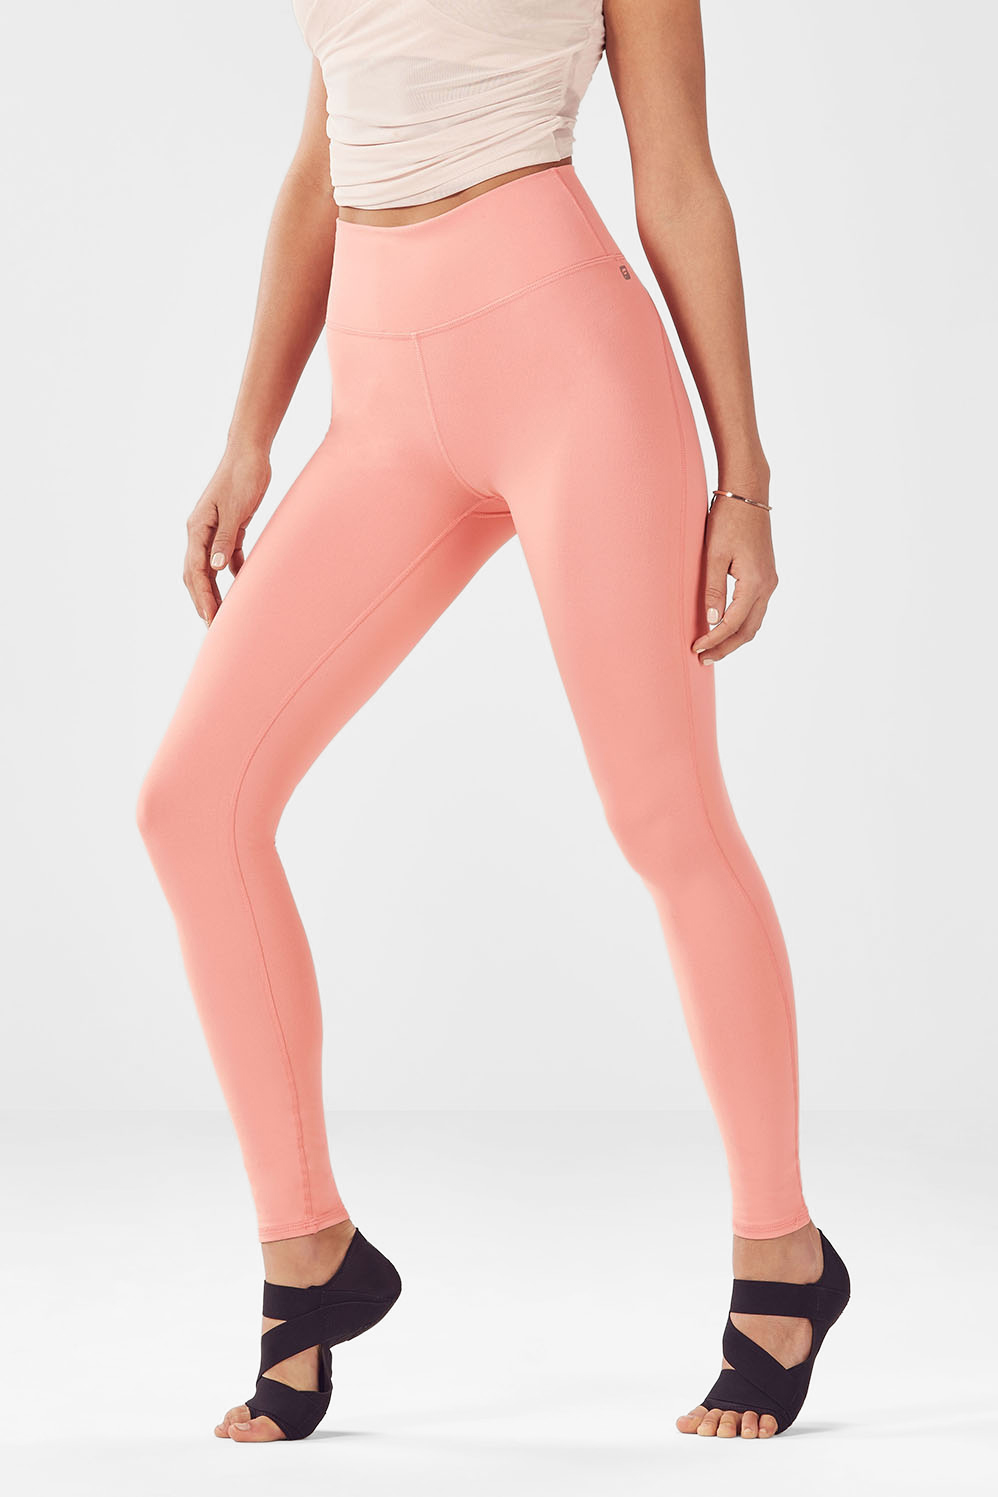 High-Waisted Solid PowerHold Legging - Papaya